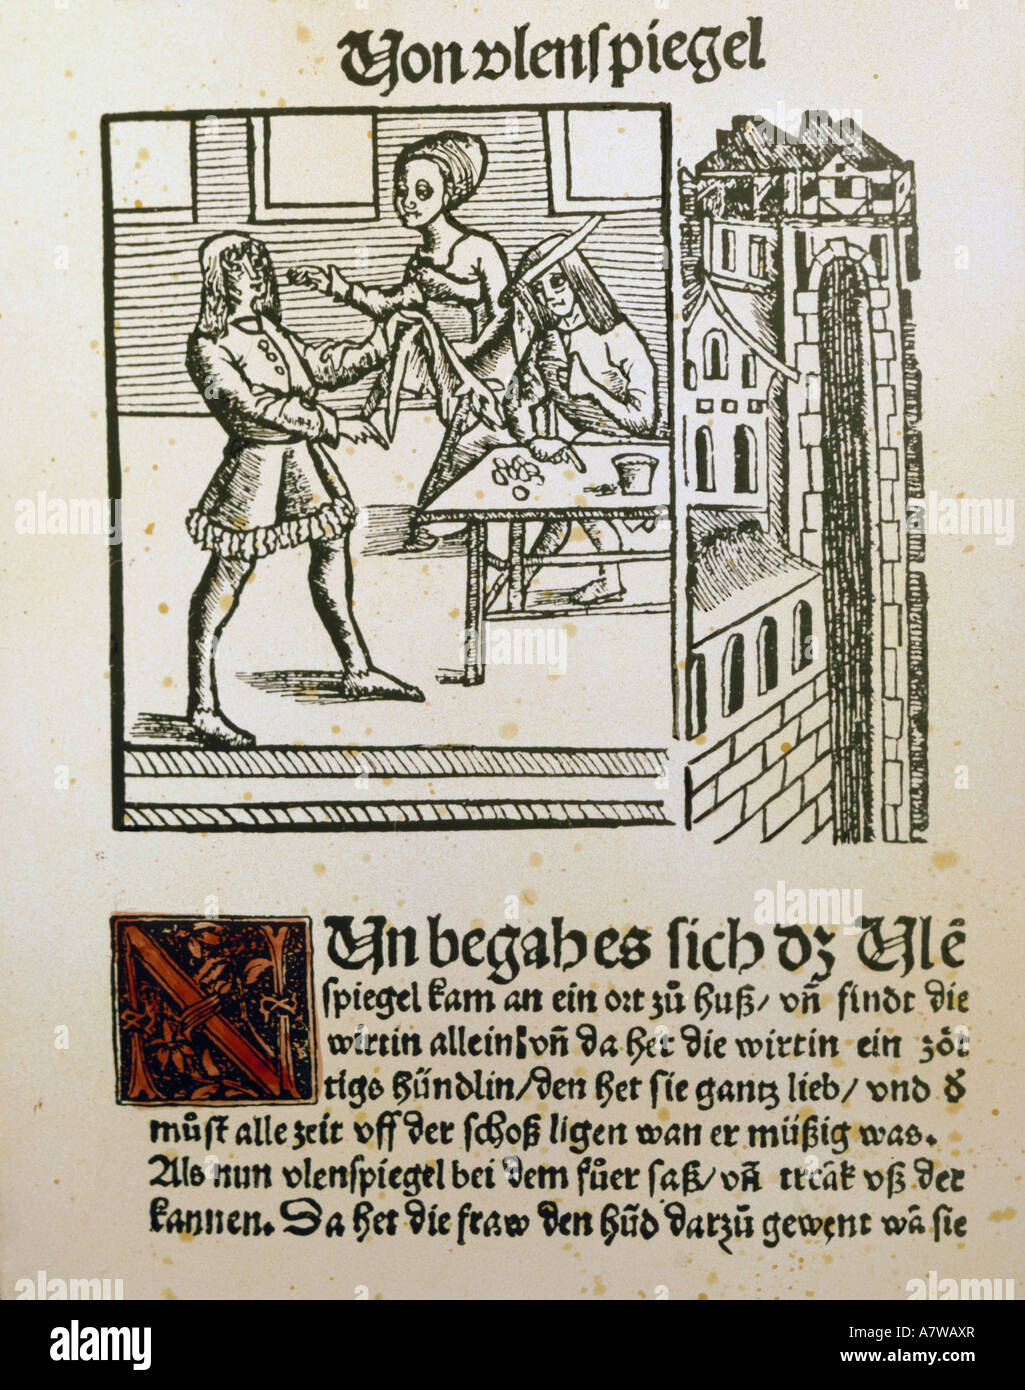 literture, 'Eulenspiegel', title of the 2nd collection of droll stories, printed by Johannes Grüninger, - Stock Image